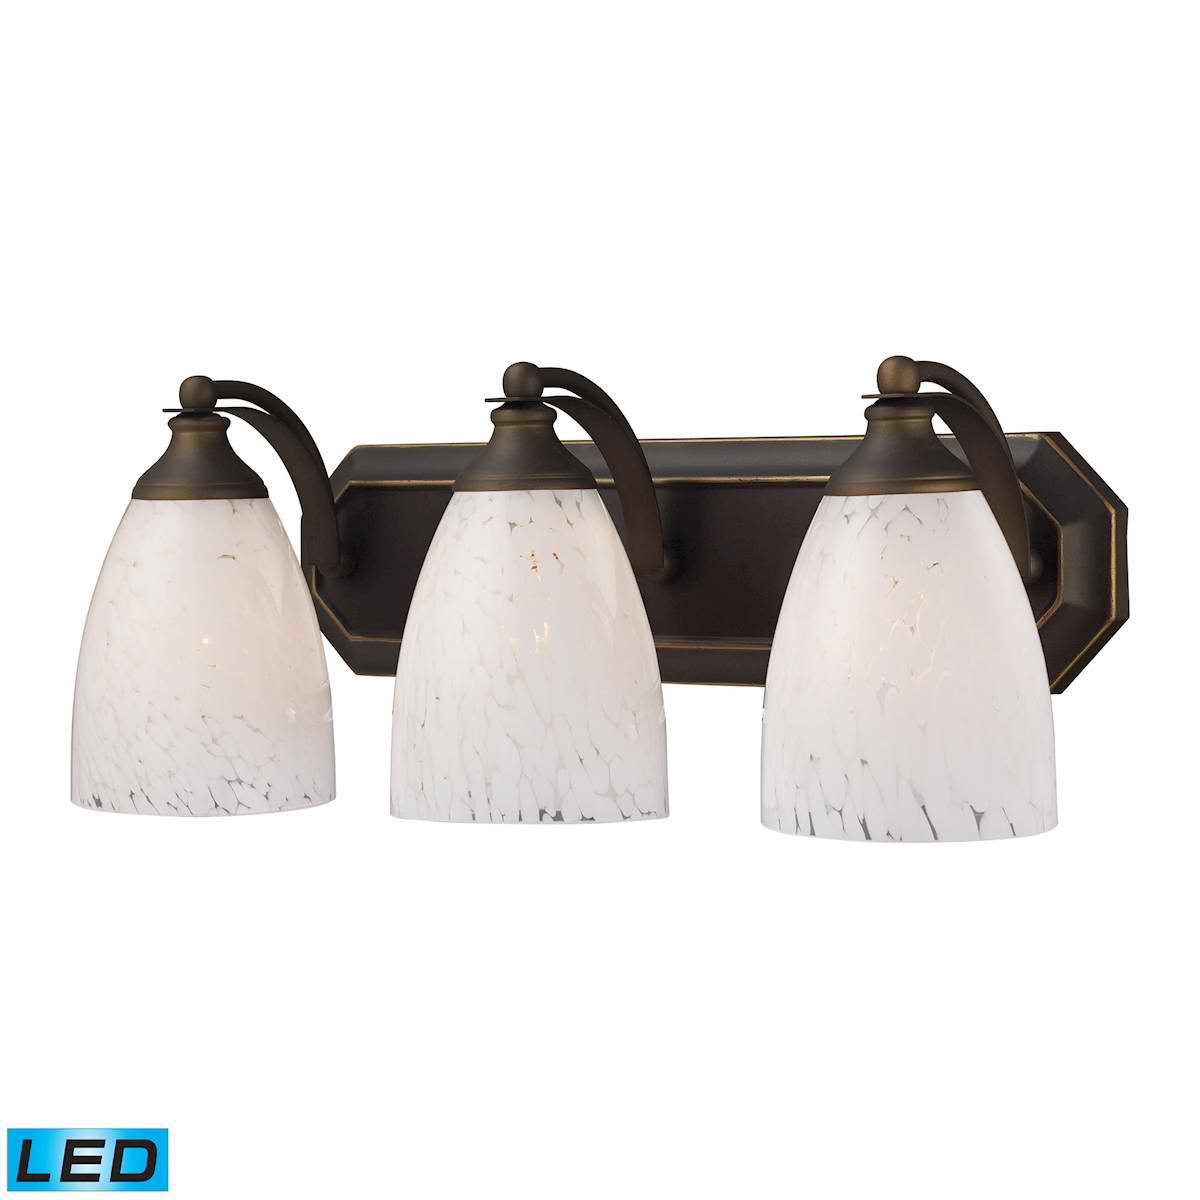 3 Light Vanity in Aged Bronze and Snow White Glass - LED, 800 Lumens (2400 Lumens Total) with Full Scale